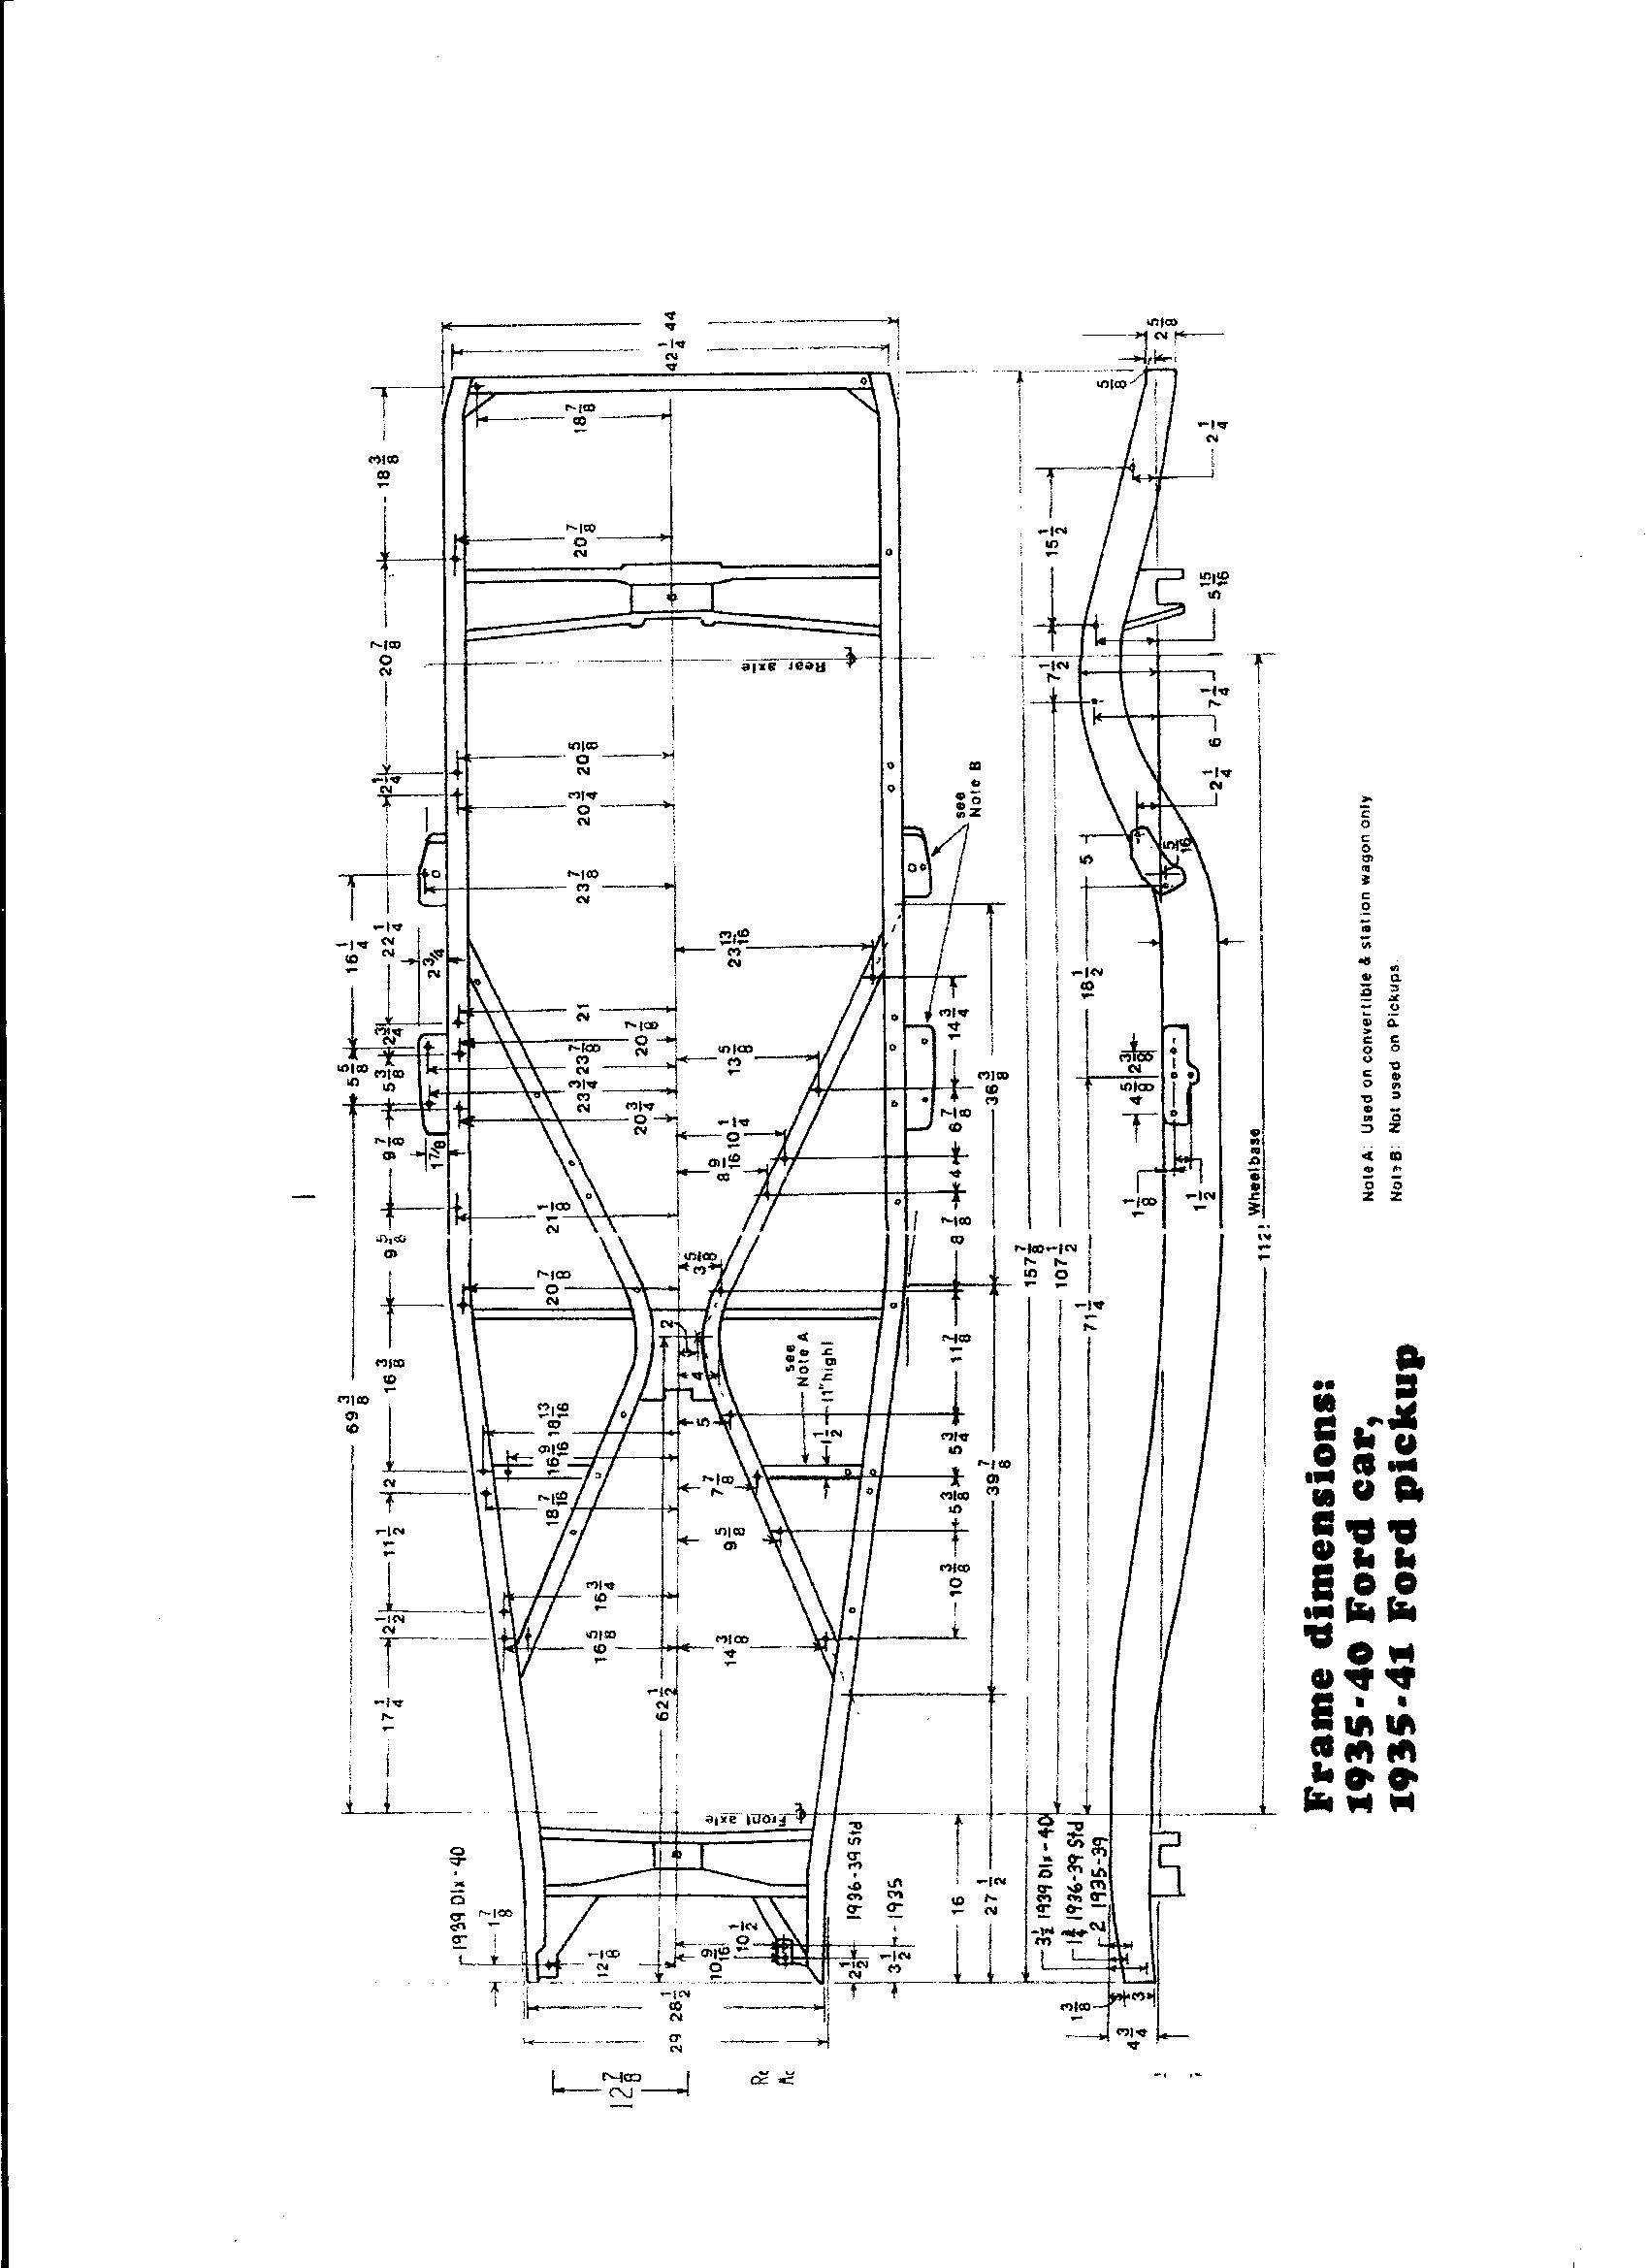 Old Chassis Engineering Schematics Trusted Wiring Diagrams 1935 Chevrolet Diagram A 1941 Ford Coupe And I Need To Assemble My Rh Justanswer Com